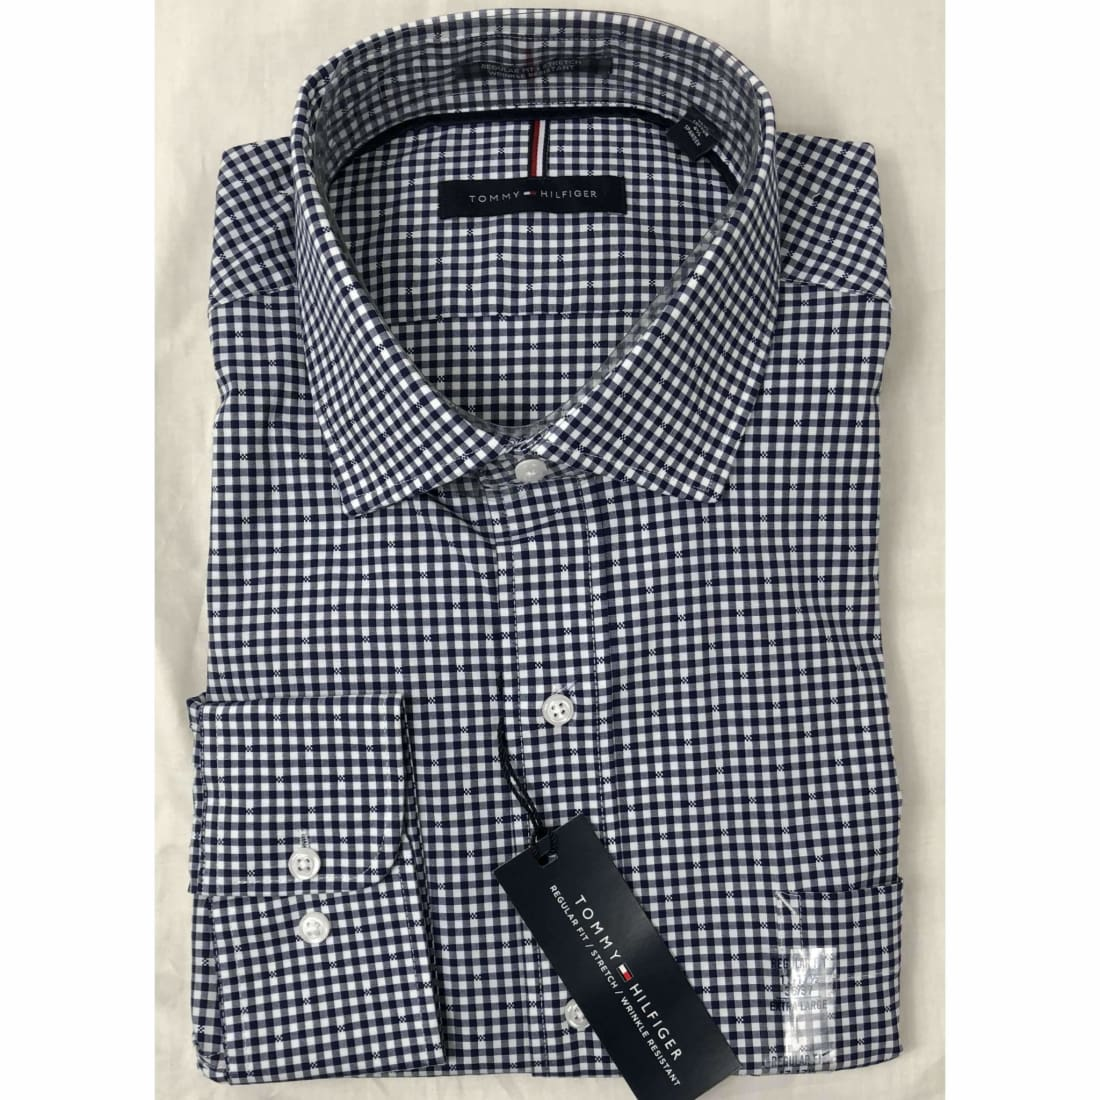 Tommy Hilfiger Regular Fit Button Front Dress Shirt Xl / Blue /white Check / 36-37 Dress Shirts